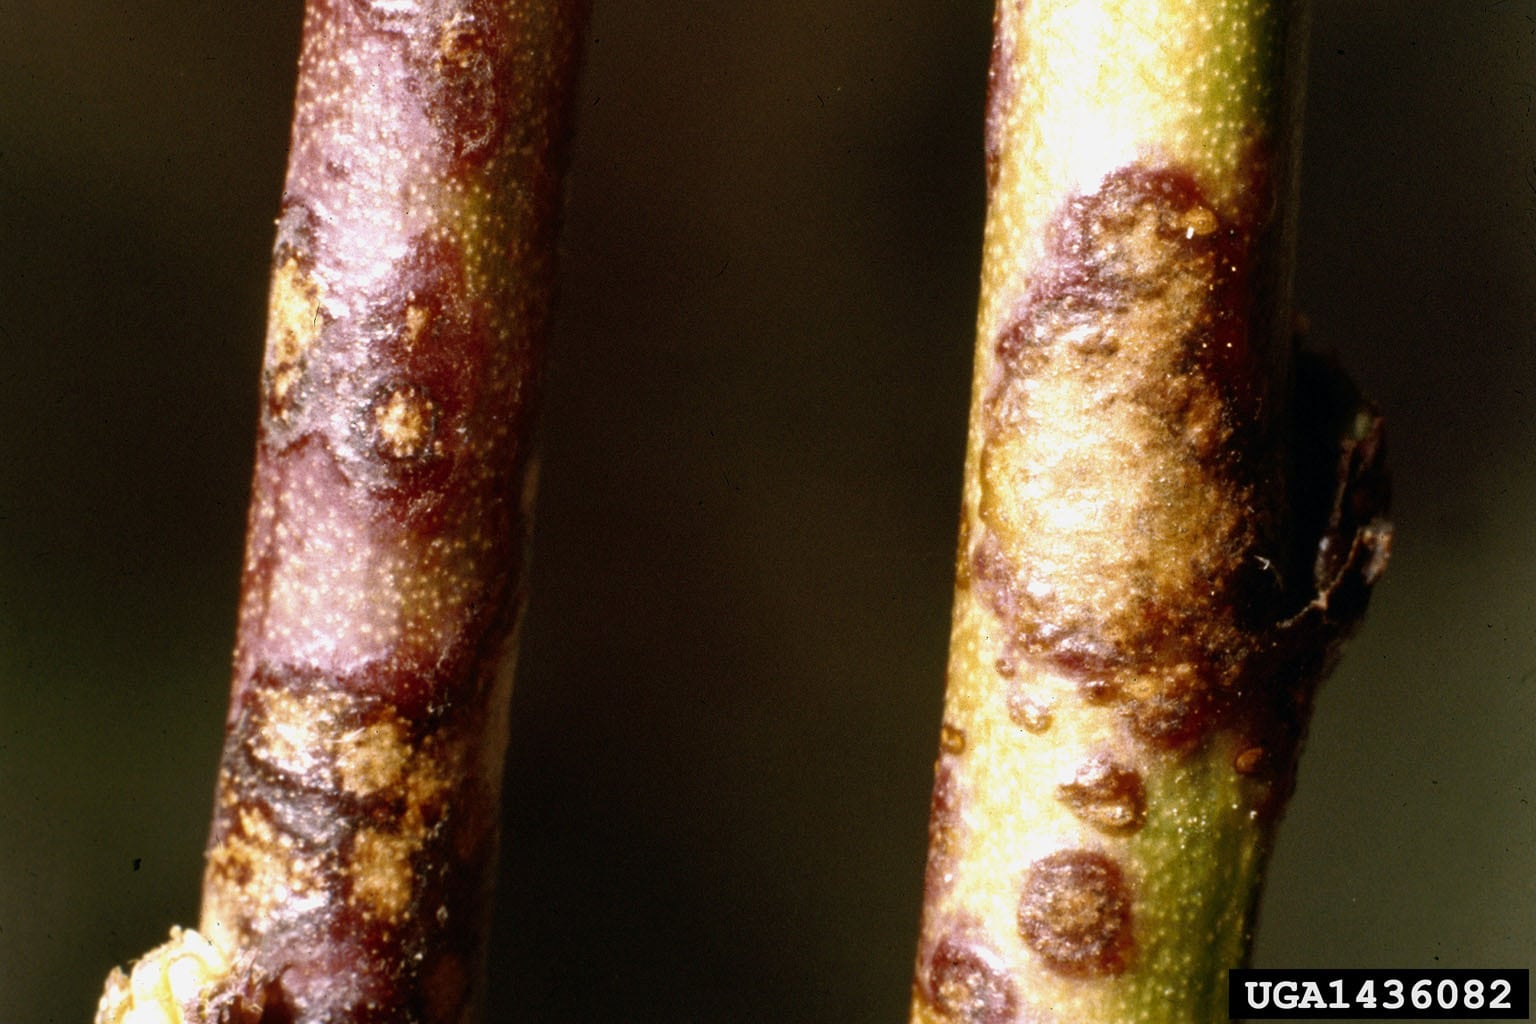 1544274626 learn about peach scab on apricots takeseeds com - Learn About Peach Scab On Apricots